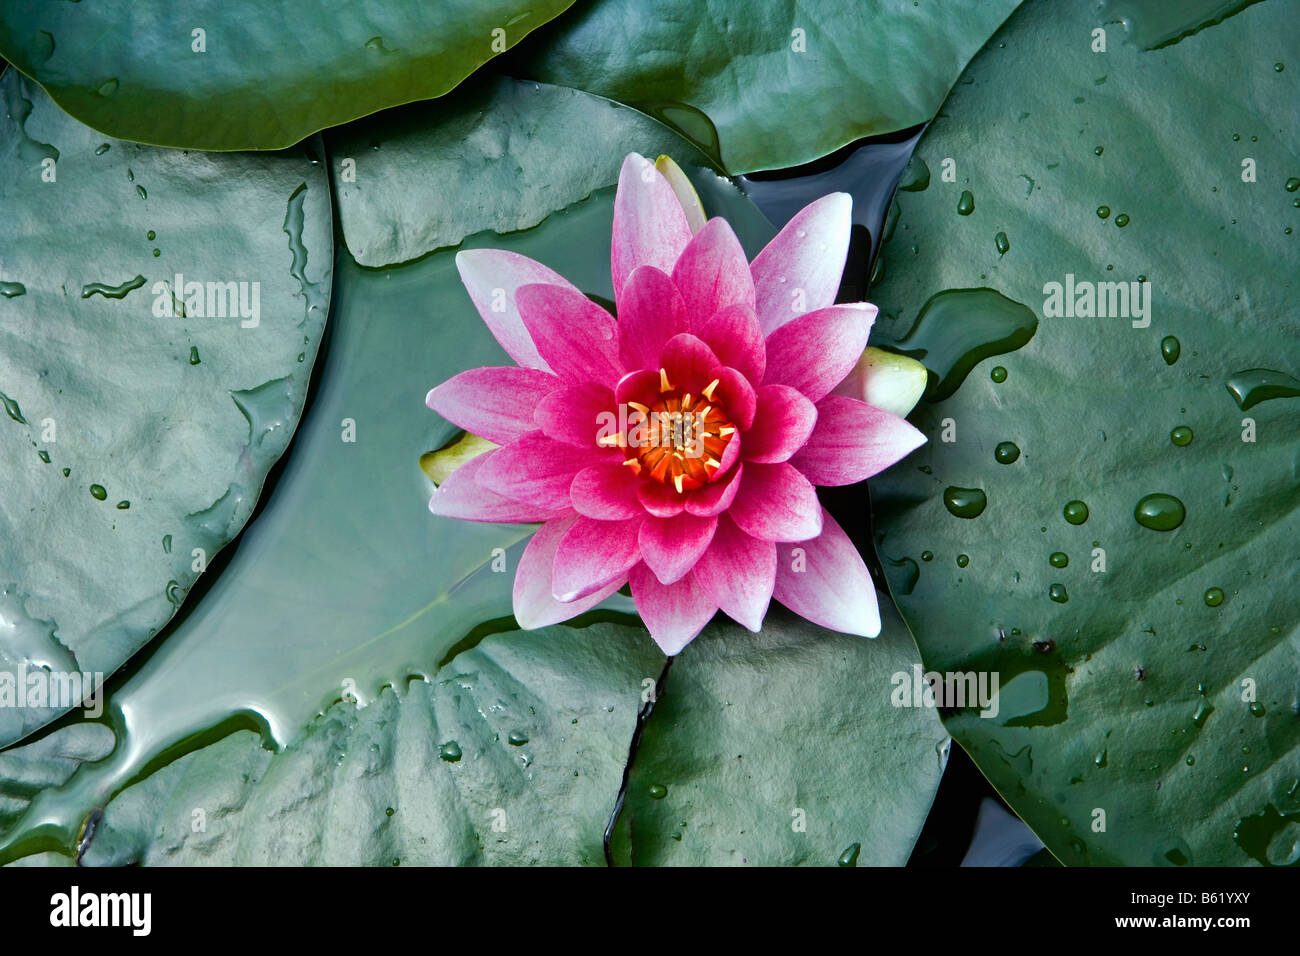 Netherlands Noord Holland Graveland Water lily - Stock Image